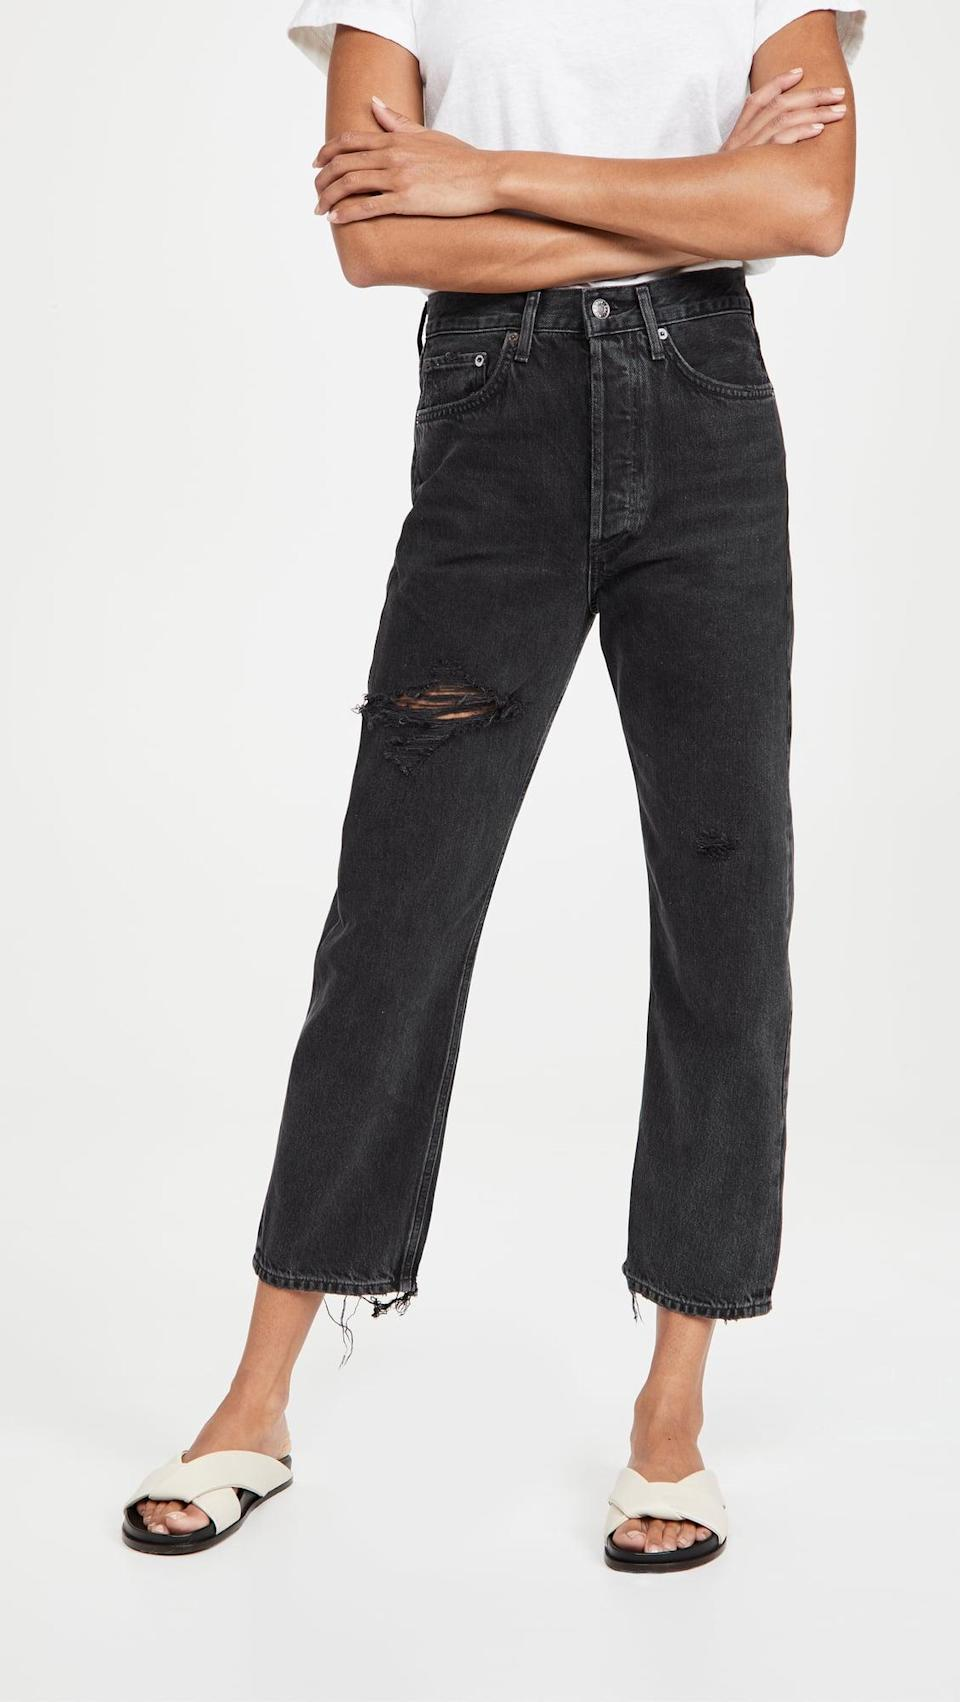 <p>If you haven't tried AGOLDE jeans yet, you're missing out. Our current favorite pair is the <span> 90's Crop Mid Rise Loose Straight Jeans</span> ($198).</p>